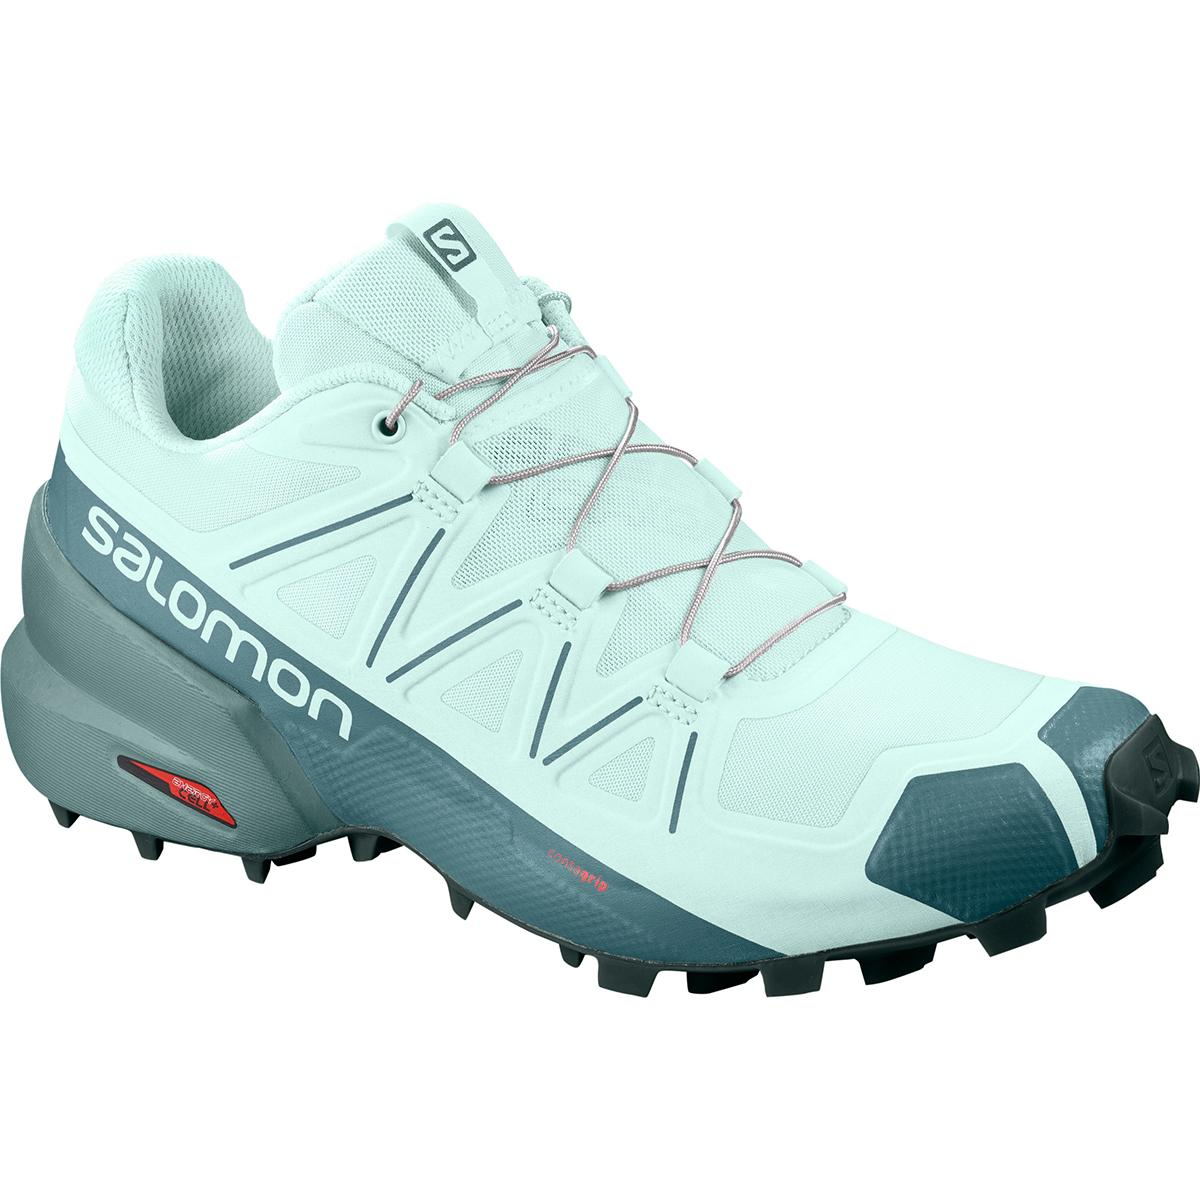 Salomon women's Speedcross 5 Trail Run Shoe in Icy Morn and Hydro main view